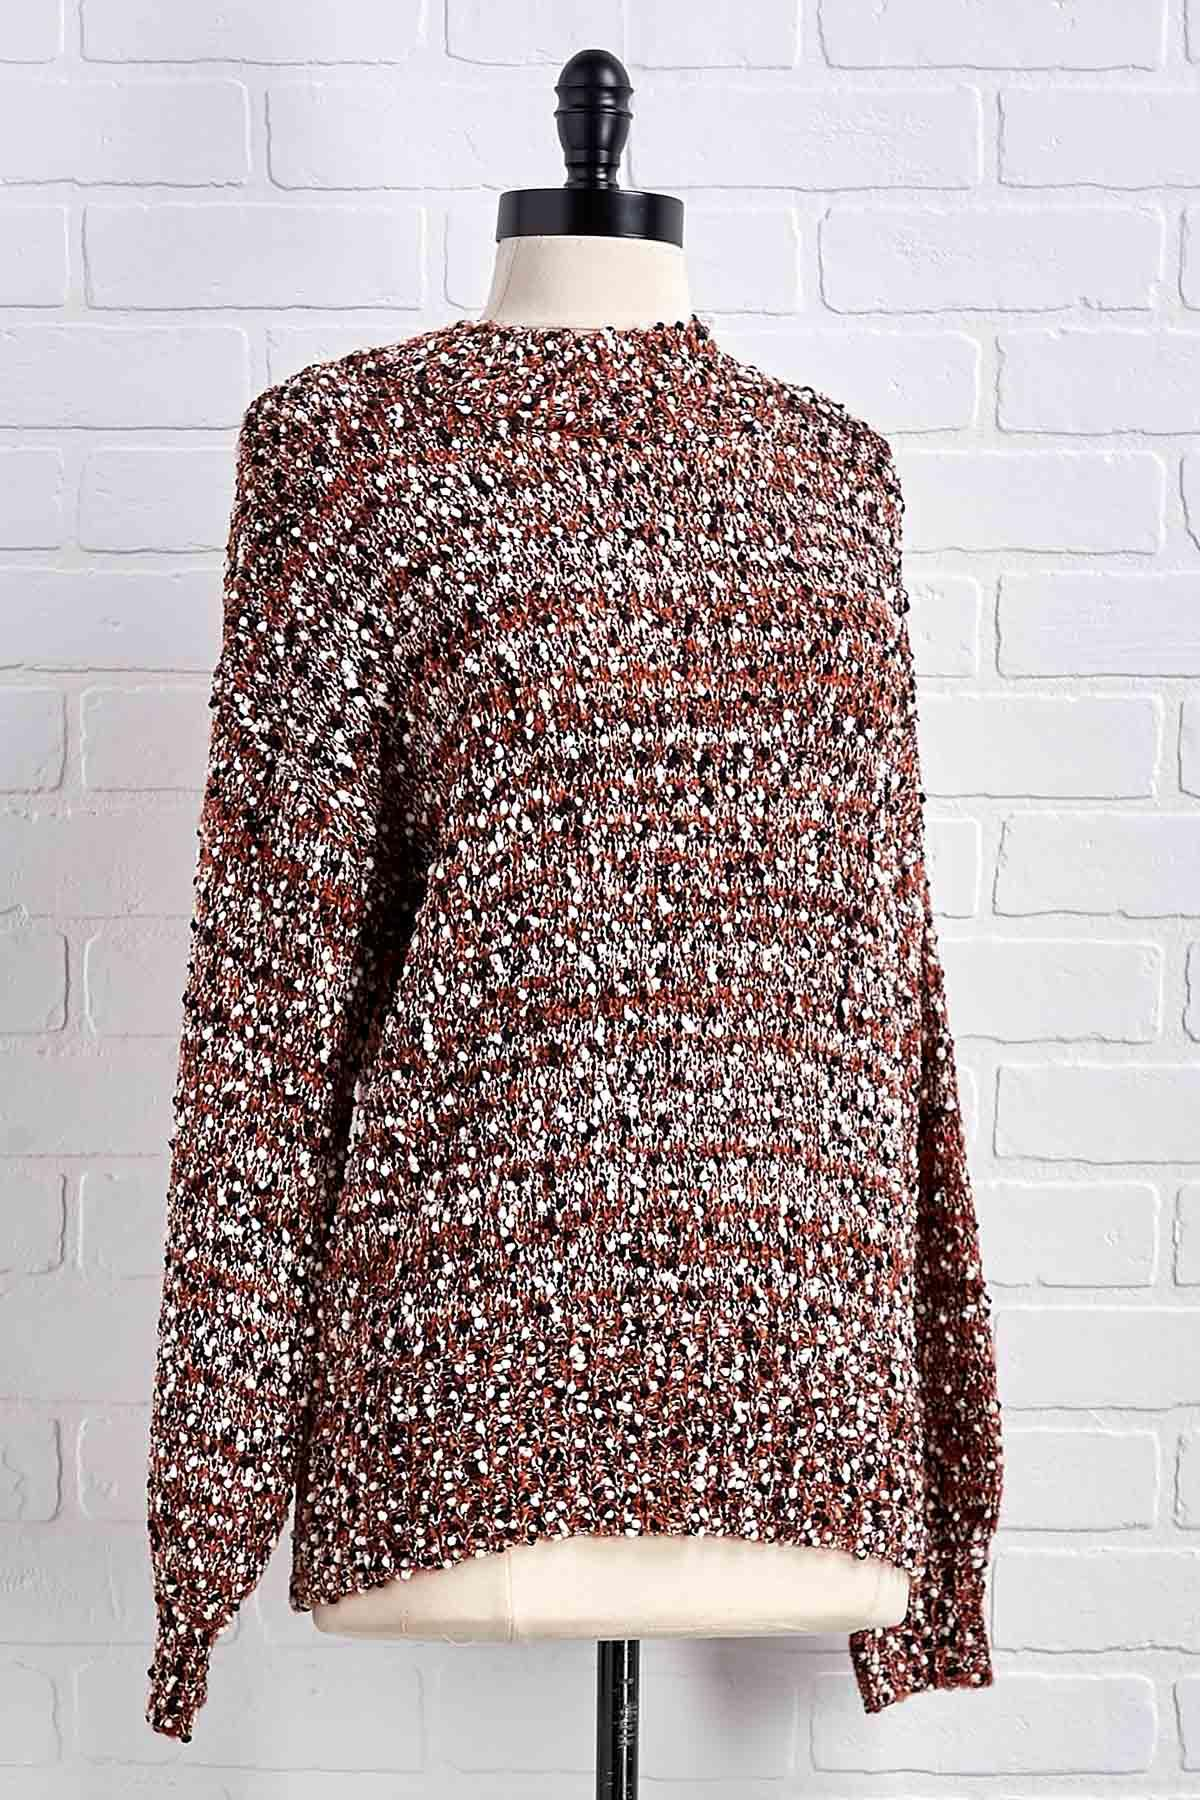 Remaining Neutral Textured Sweater